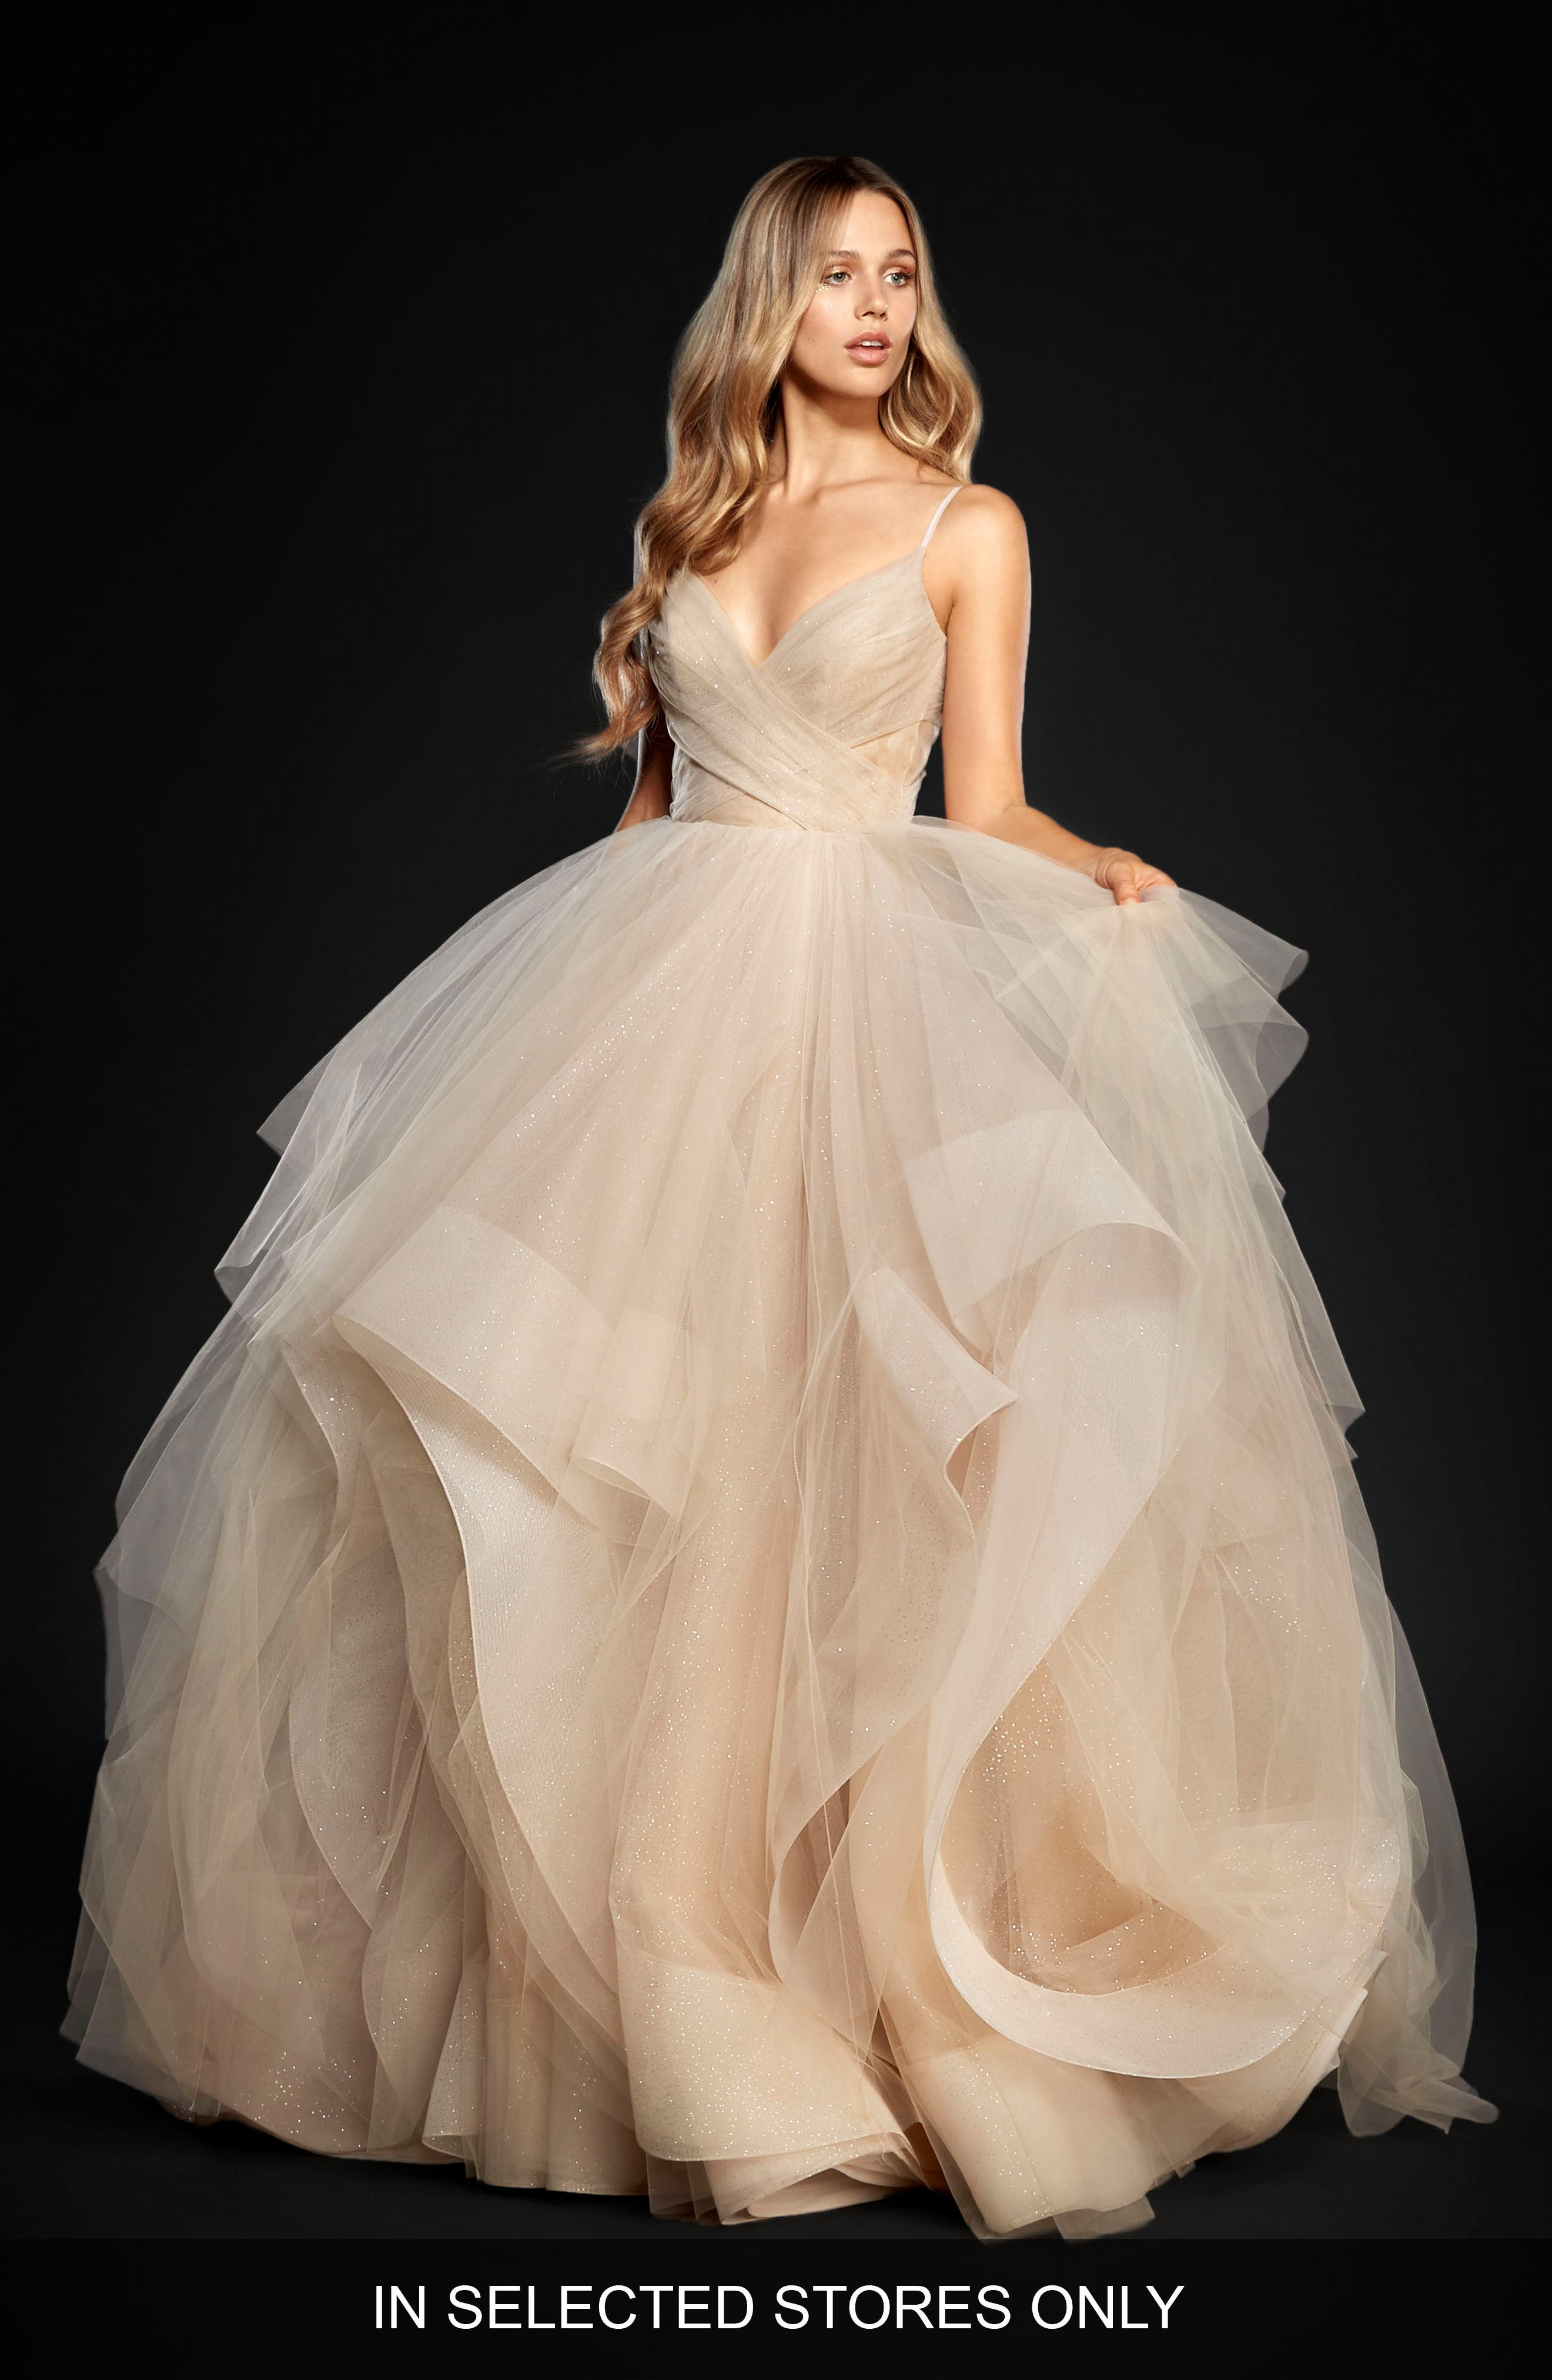 Chandon Stardust Tulle Ballgown,                             Main thumbnail 1, color,                             MOET